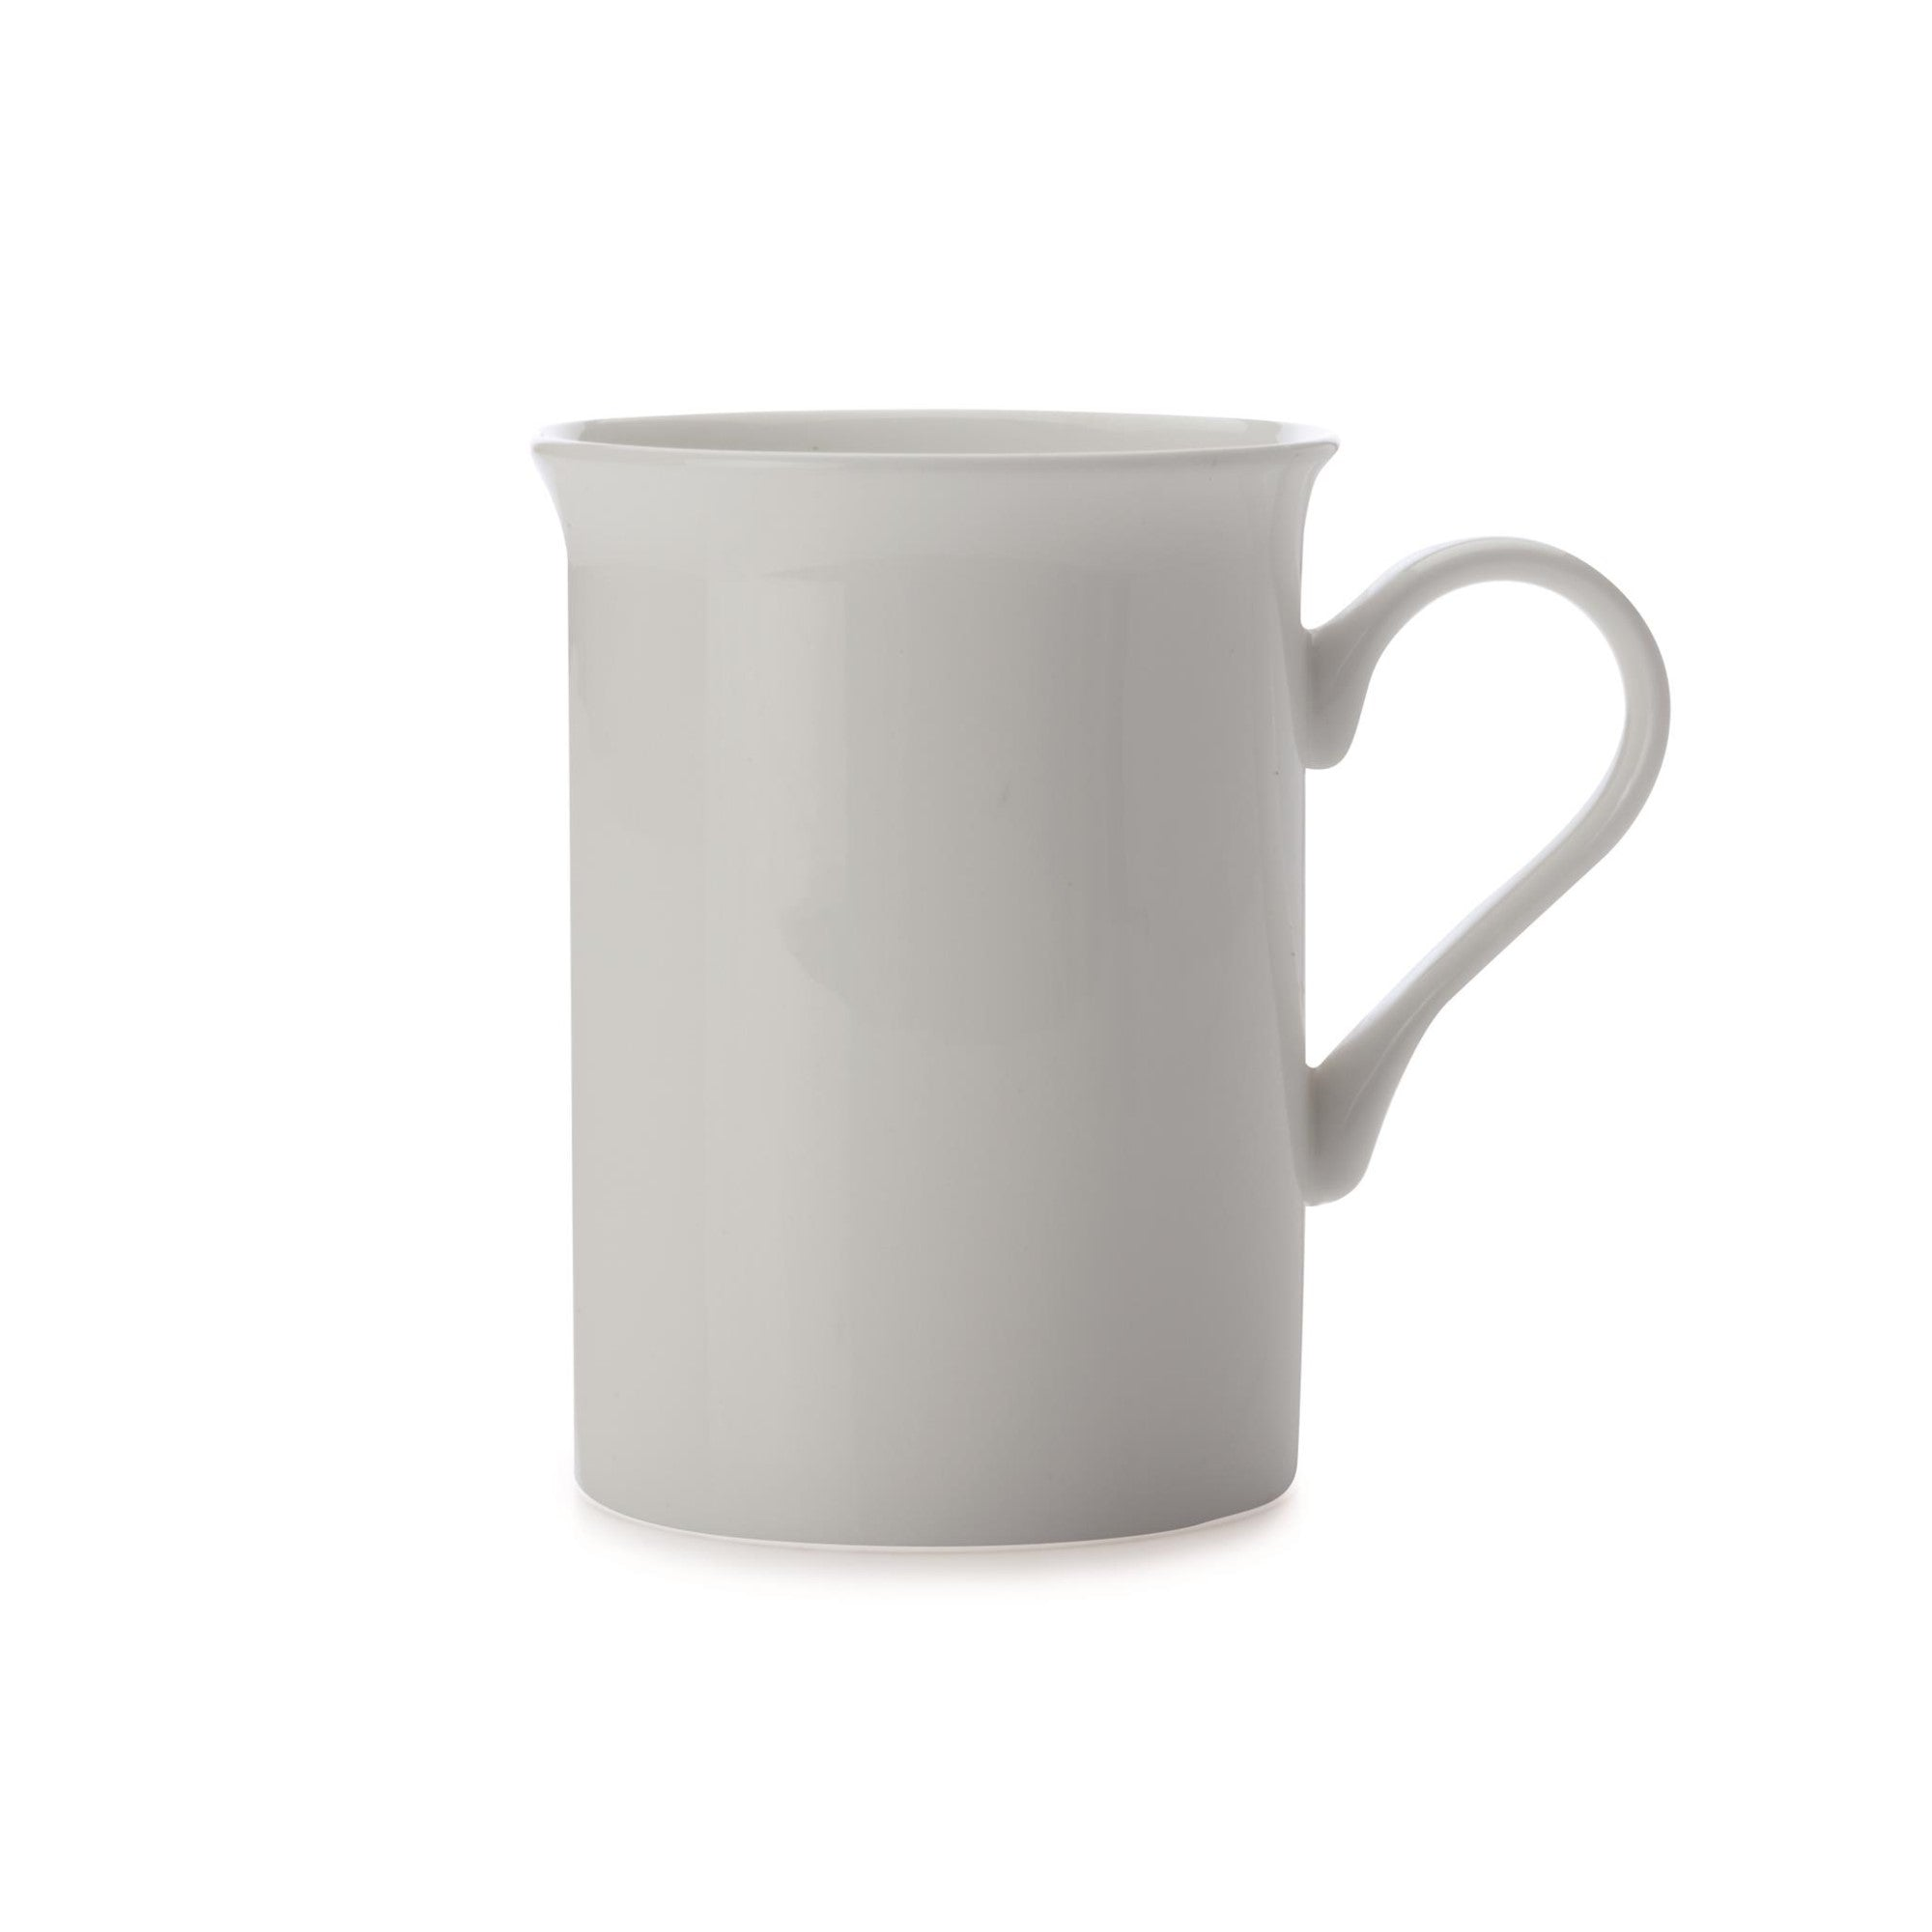 Maxwell & Williams Cashmere Mug Cylindrical